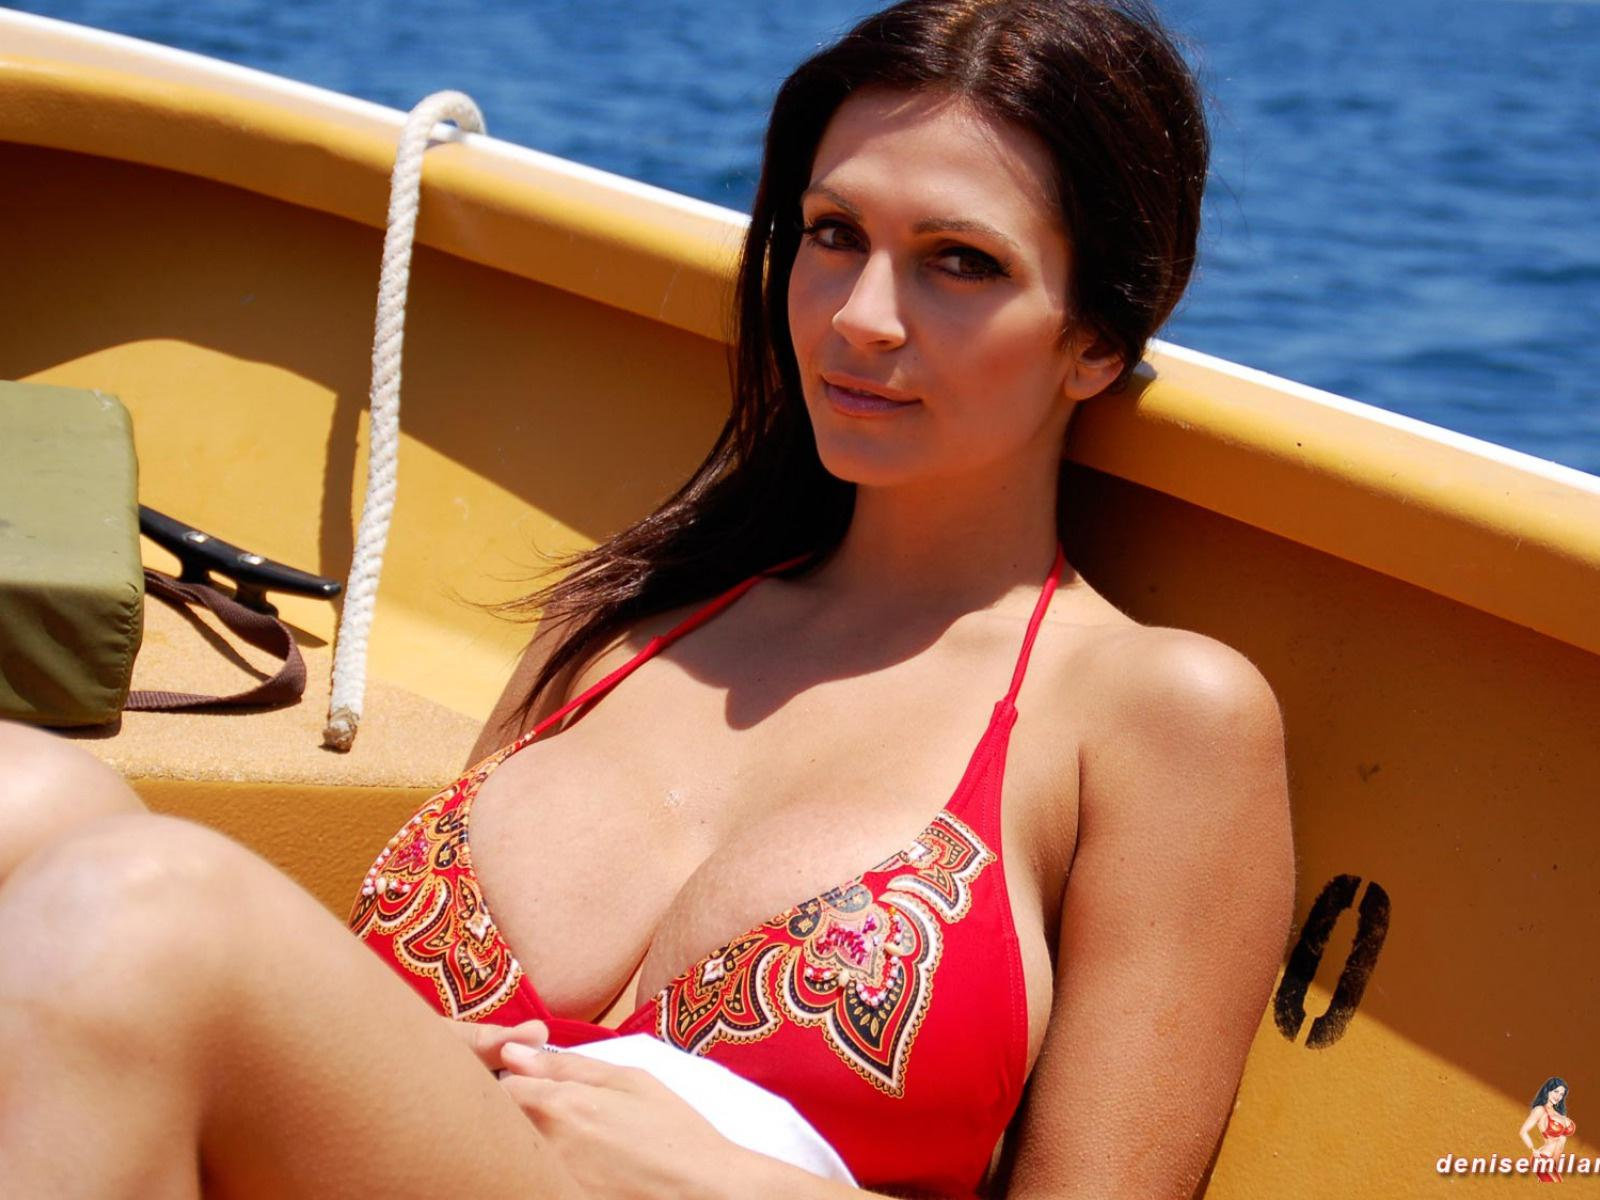 Download photo 1600x1200, denise milani, boat, water, babe ...